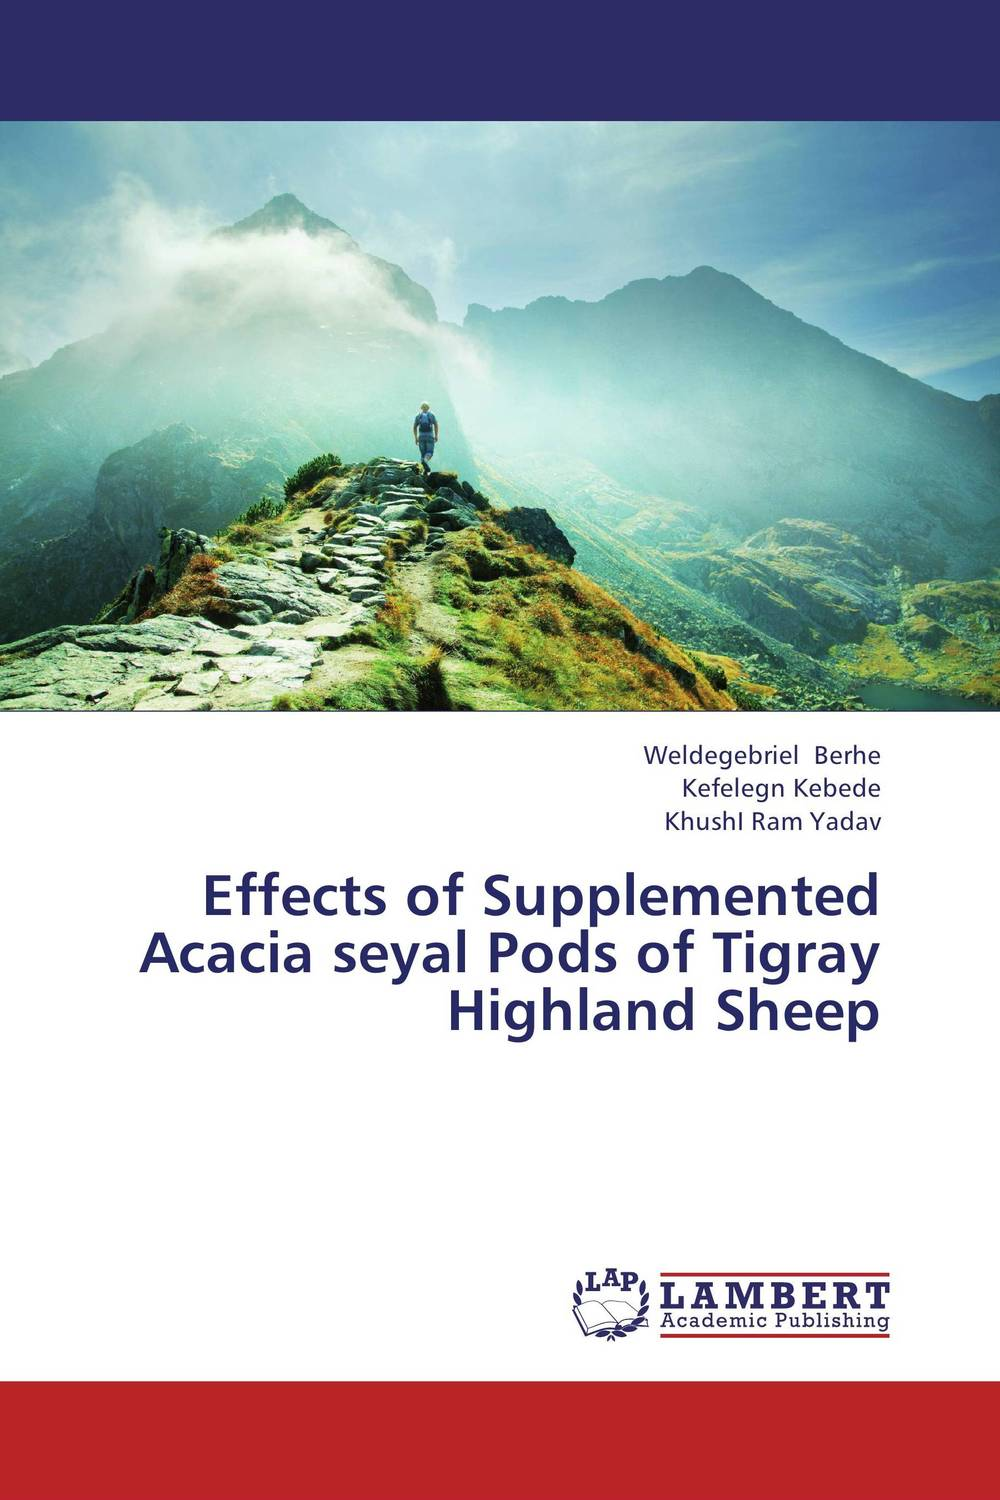 Фото Effects of Supplemented Acacia seyal Pods of Tigray Highland Sheep cervical cancer in amhara region in ethiopia